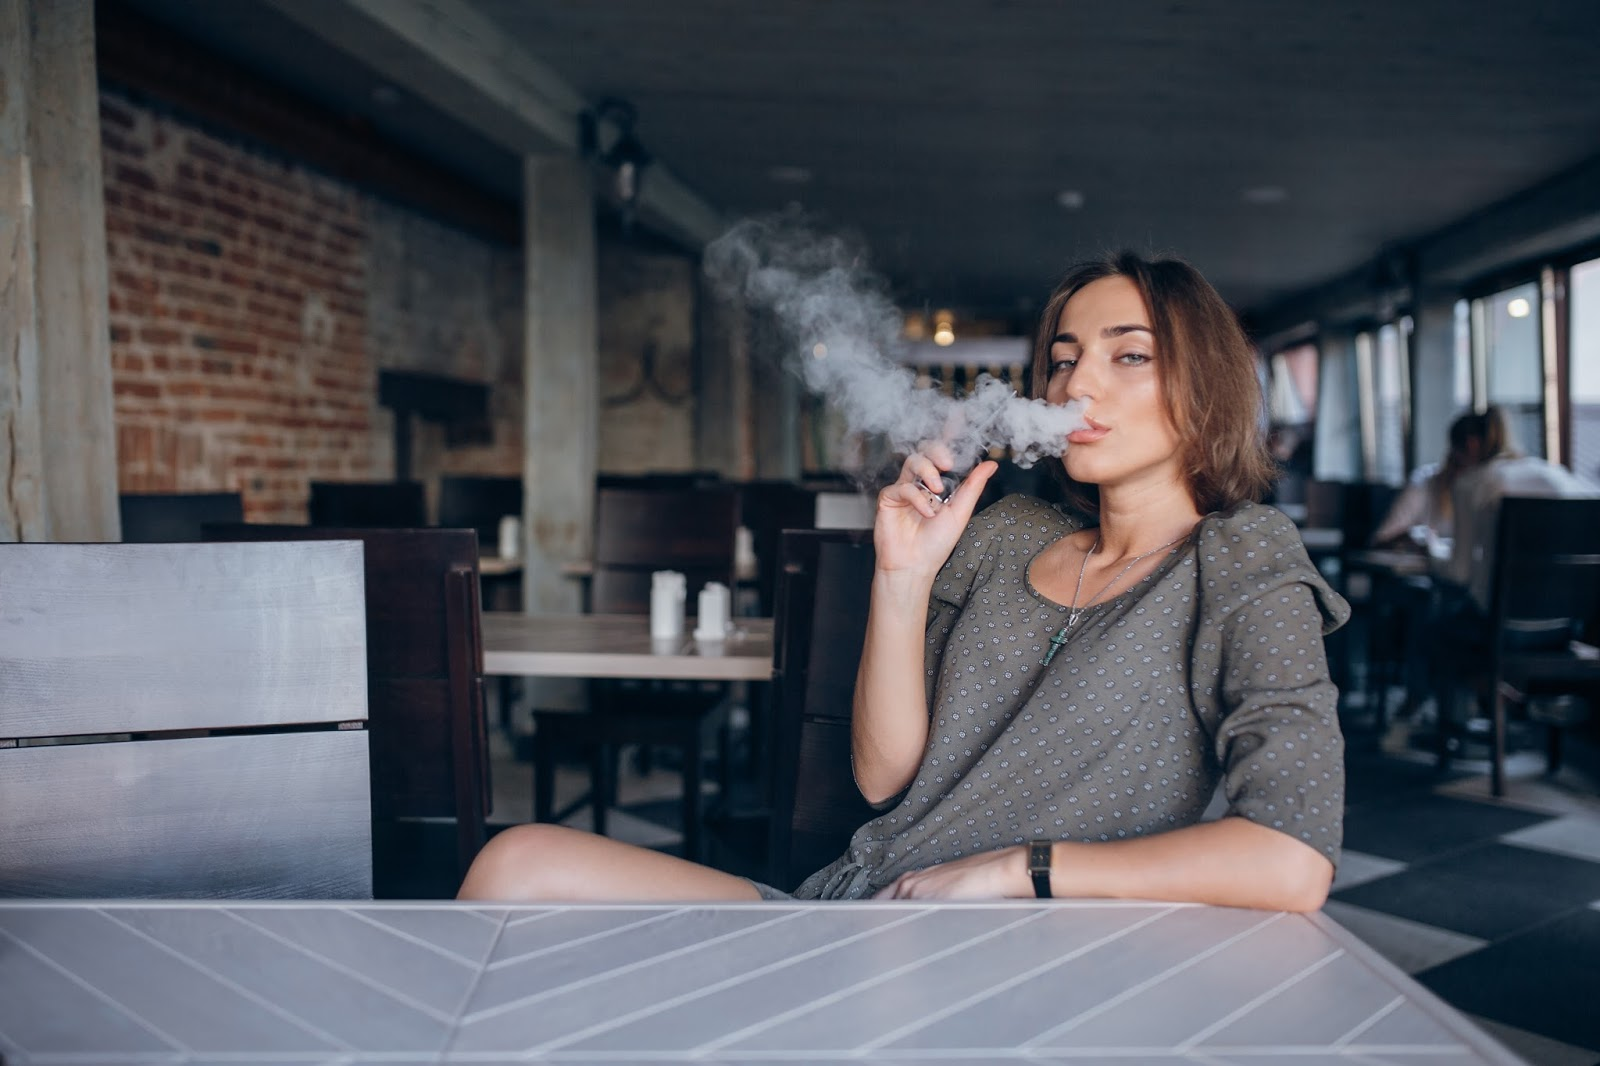 Tutorial: Beginner's Guide to Vaping Economic News Finance Reference and Education Science  wicks vaping tutorials and guides starter kits resistance wire rebuildable tanks mechanical mods e-liquid e-cigarette dripping atomizers device coils battery atomizer